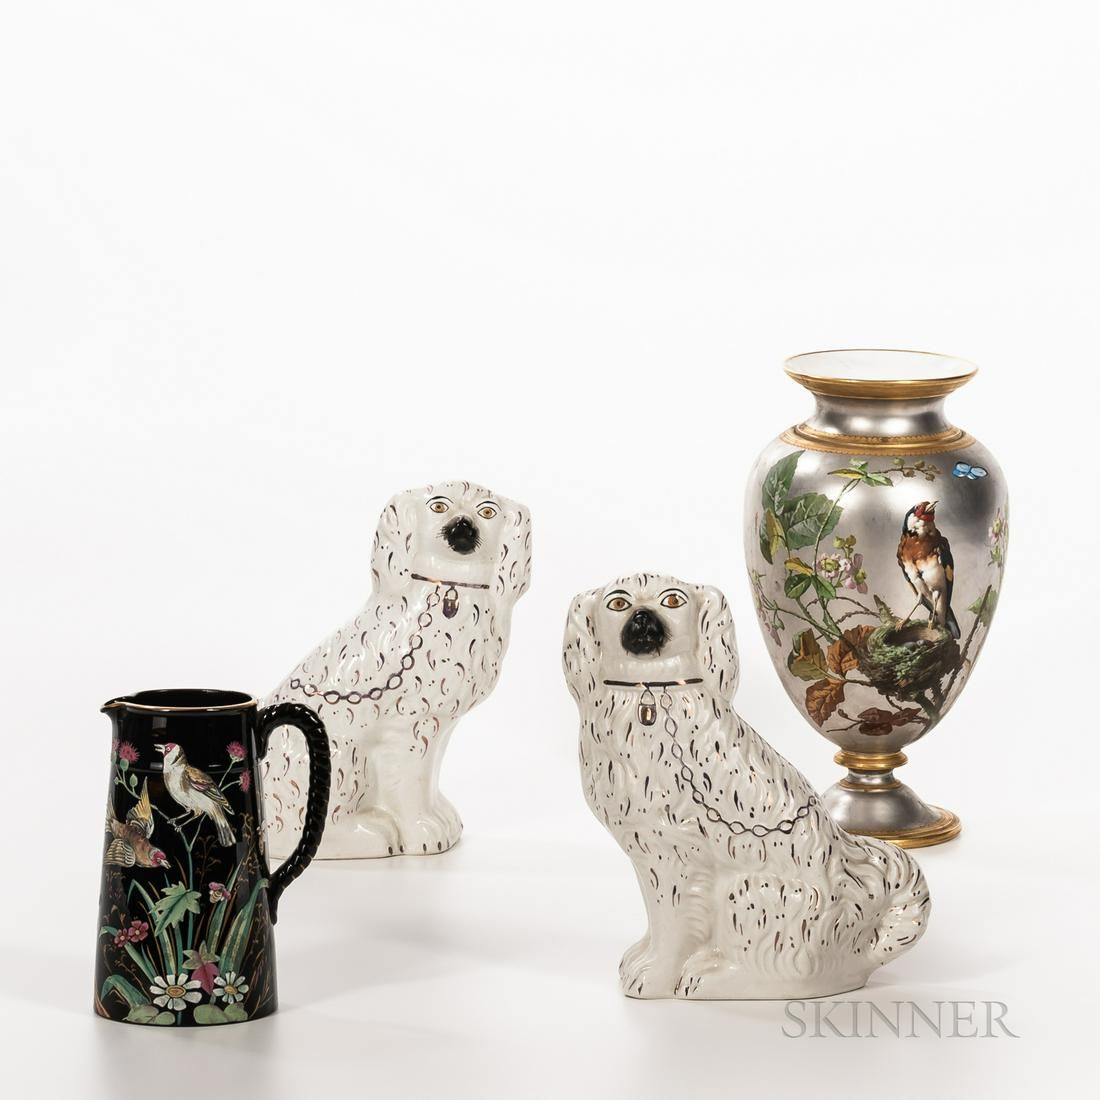 Four Victorian Pottery Items, 19th century, a